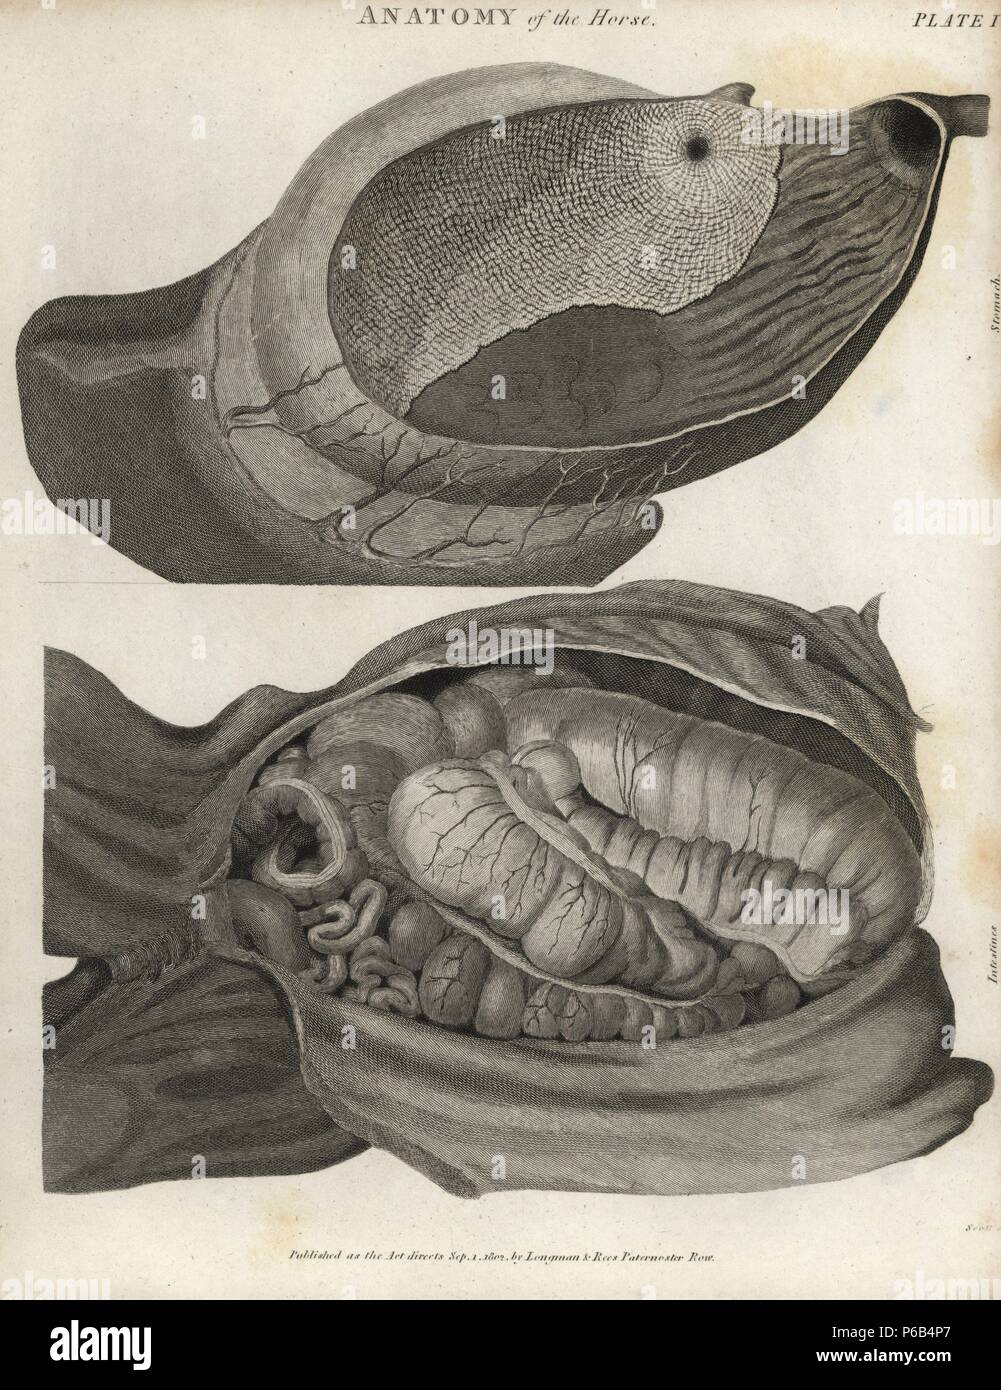 Anatomy of the horse: stomach and intestines. Copperplate engraving ...